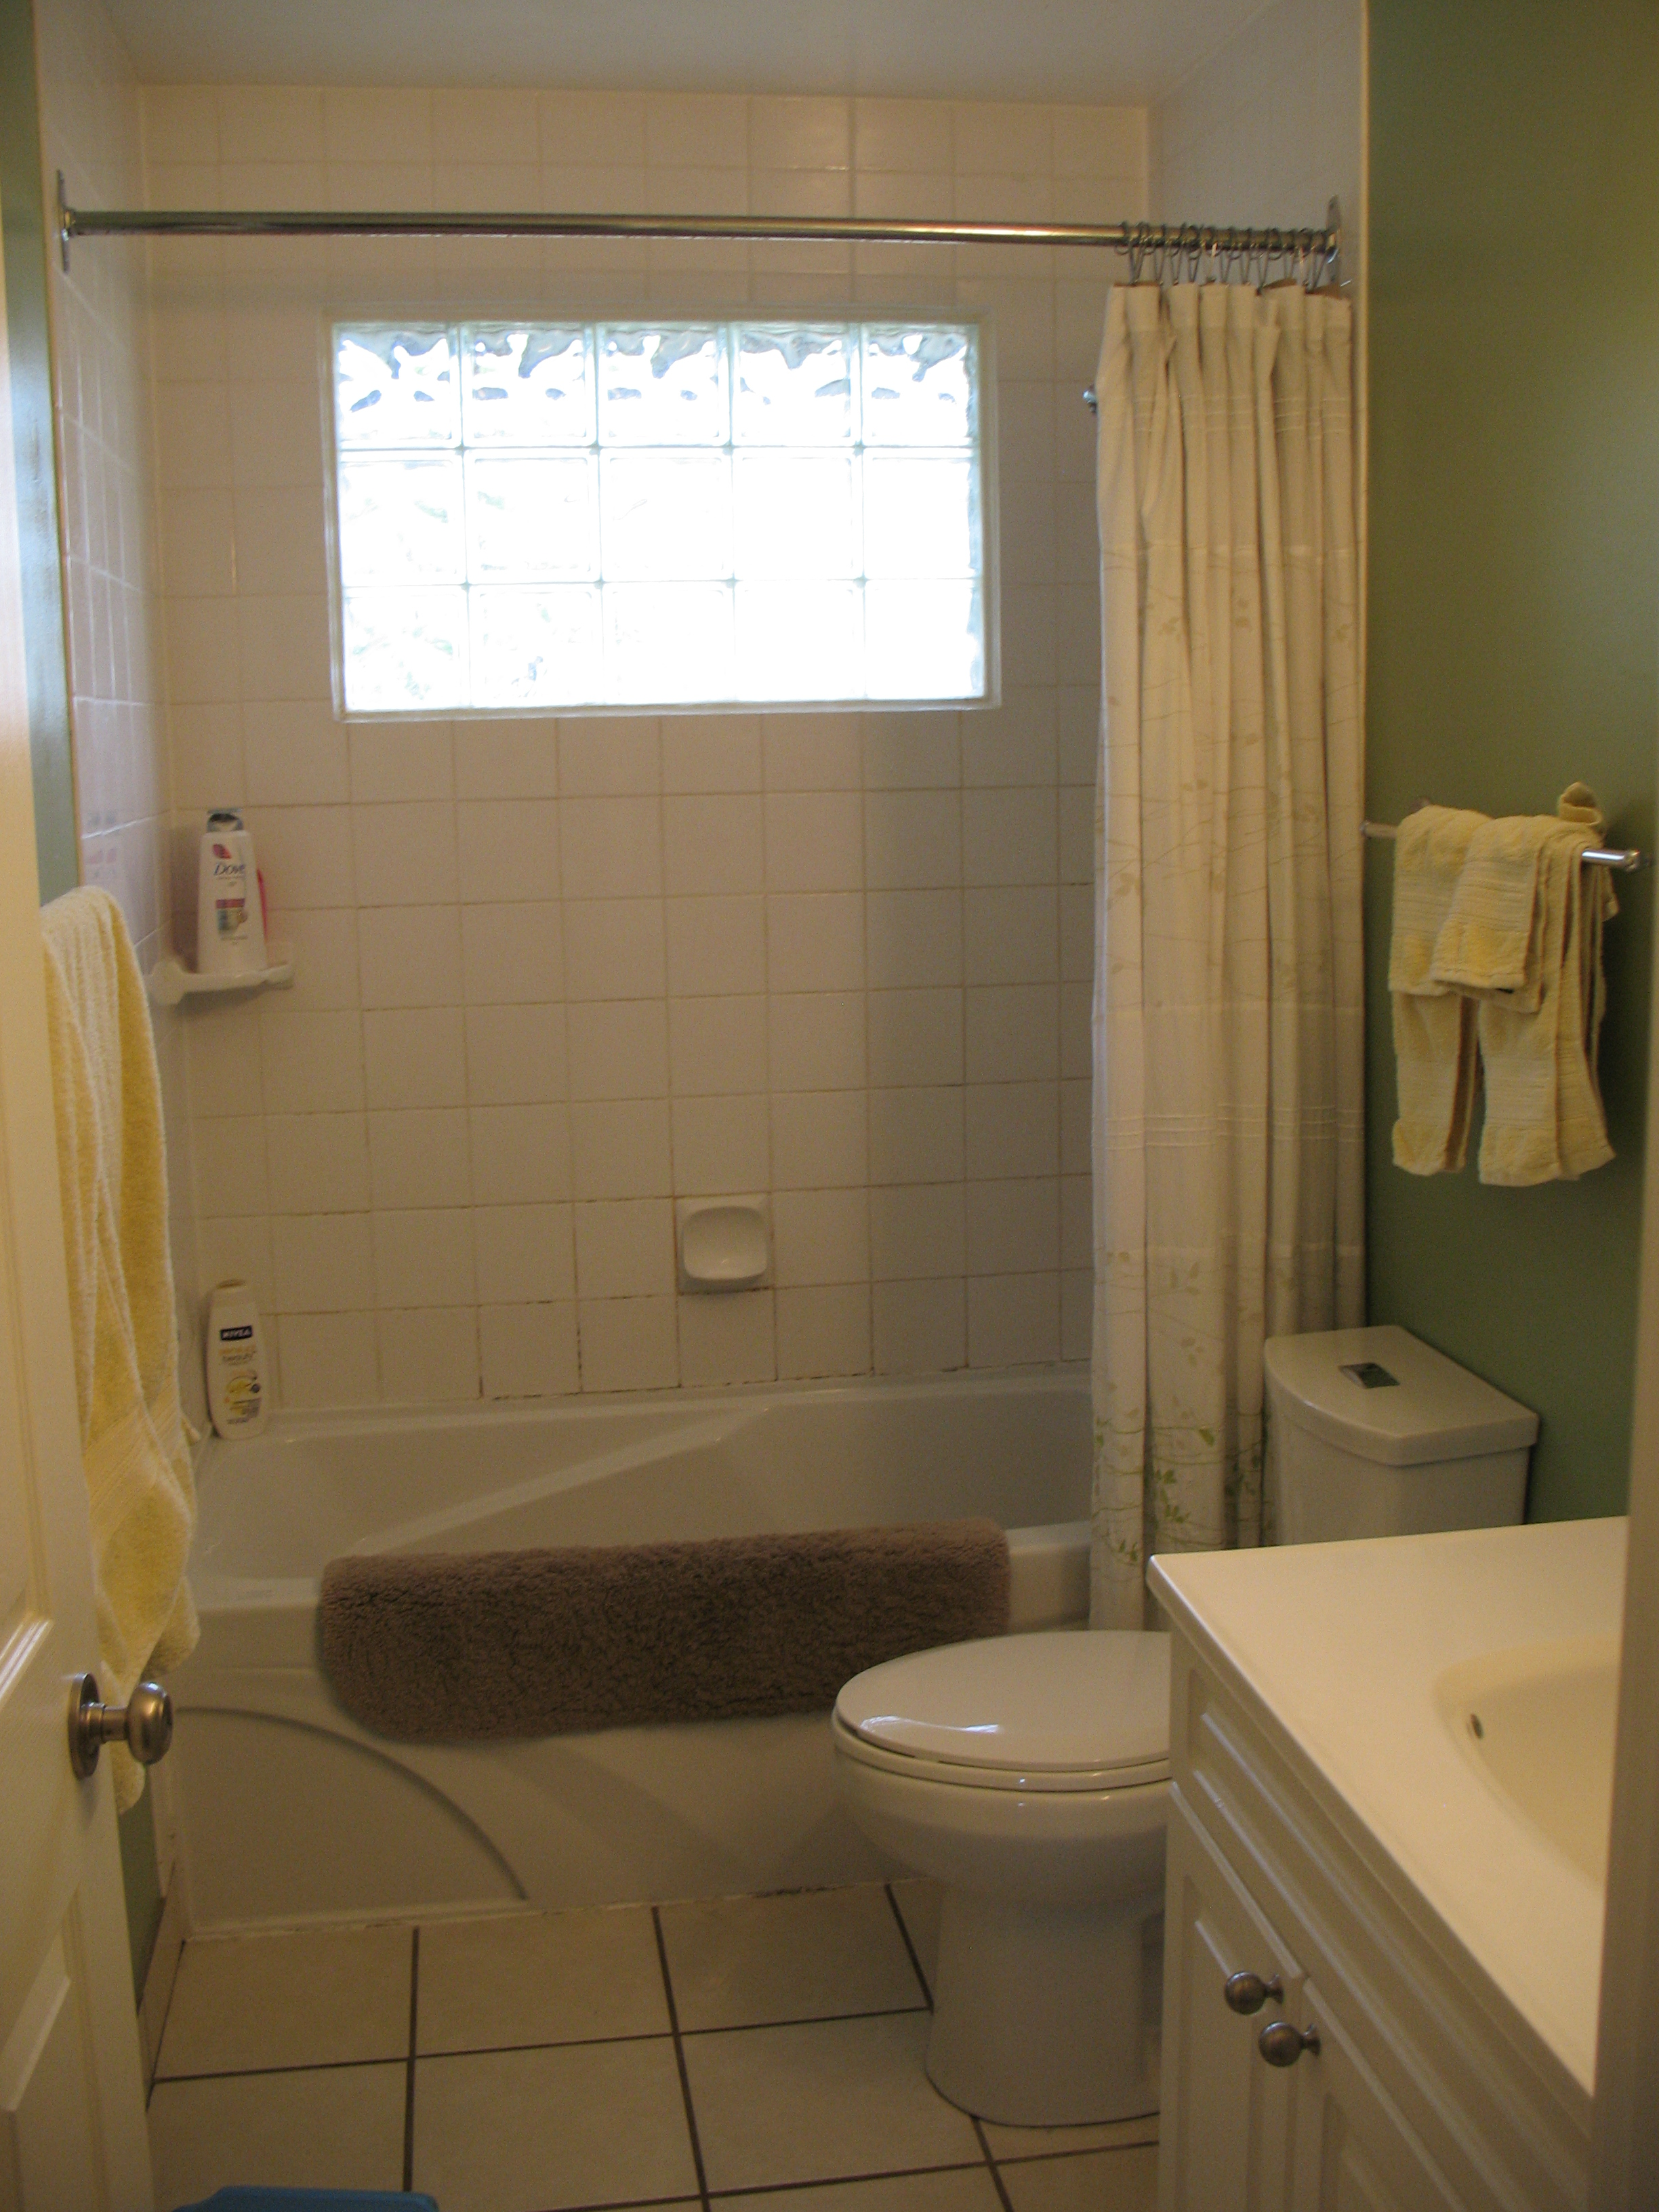 Simple  on the bench matches that in the kitchen and around our house u but more on that next time For now here is the bathroom before we did the big reno